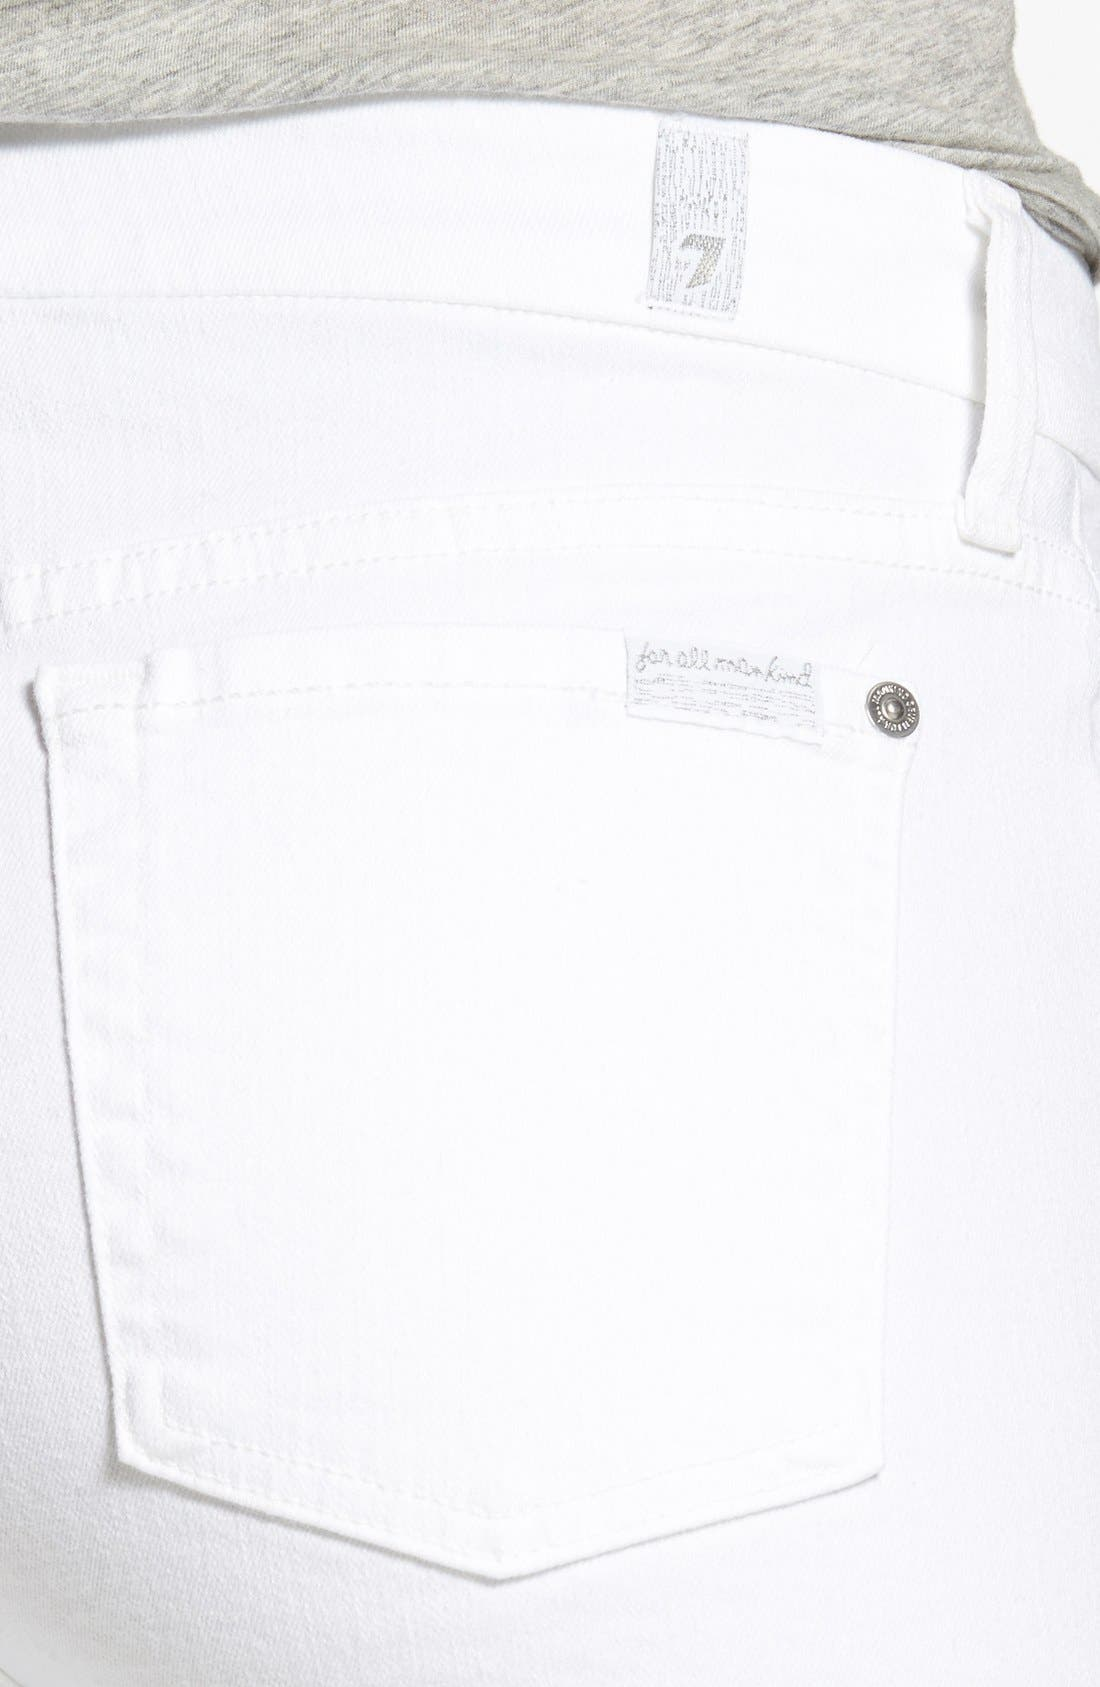 'The Skinny' Skinny Jeans,                             Alternate thumbnail 5, color,                             CLEAN WHITE